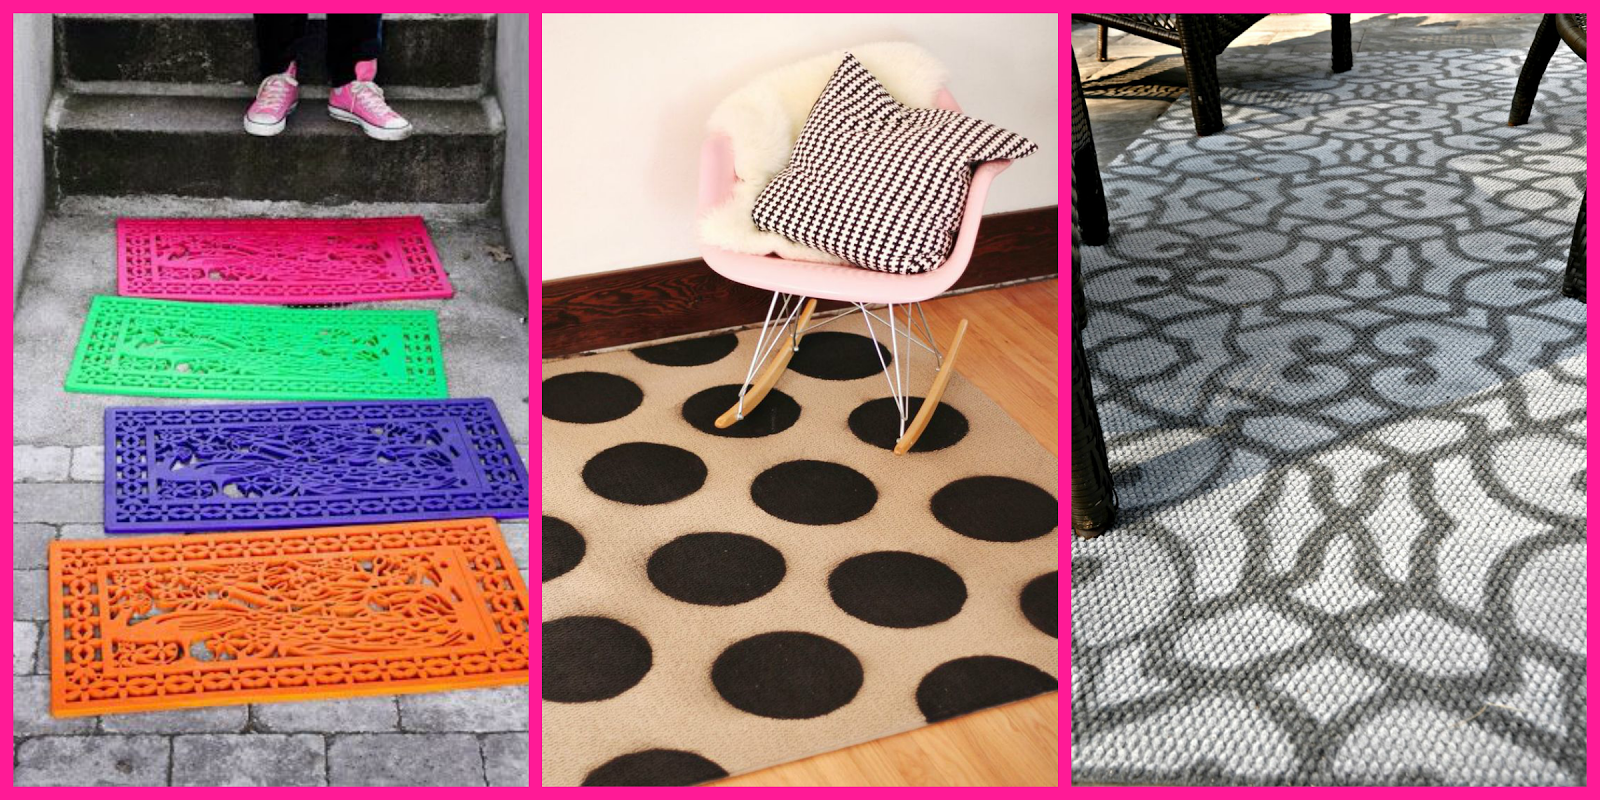 SPRAY PAINT RUG DOORMAT/ FELPUDOS ALFOMBRAS PINTURA SPRAY DIY